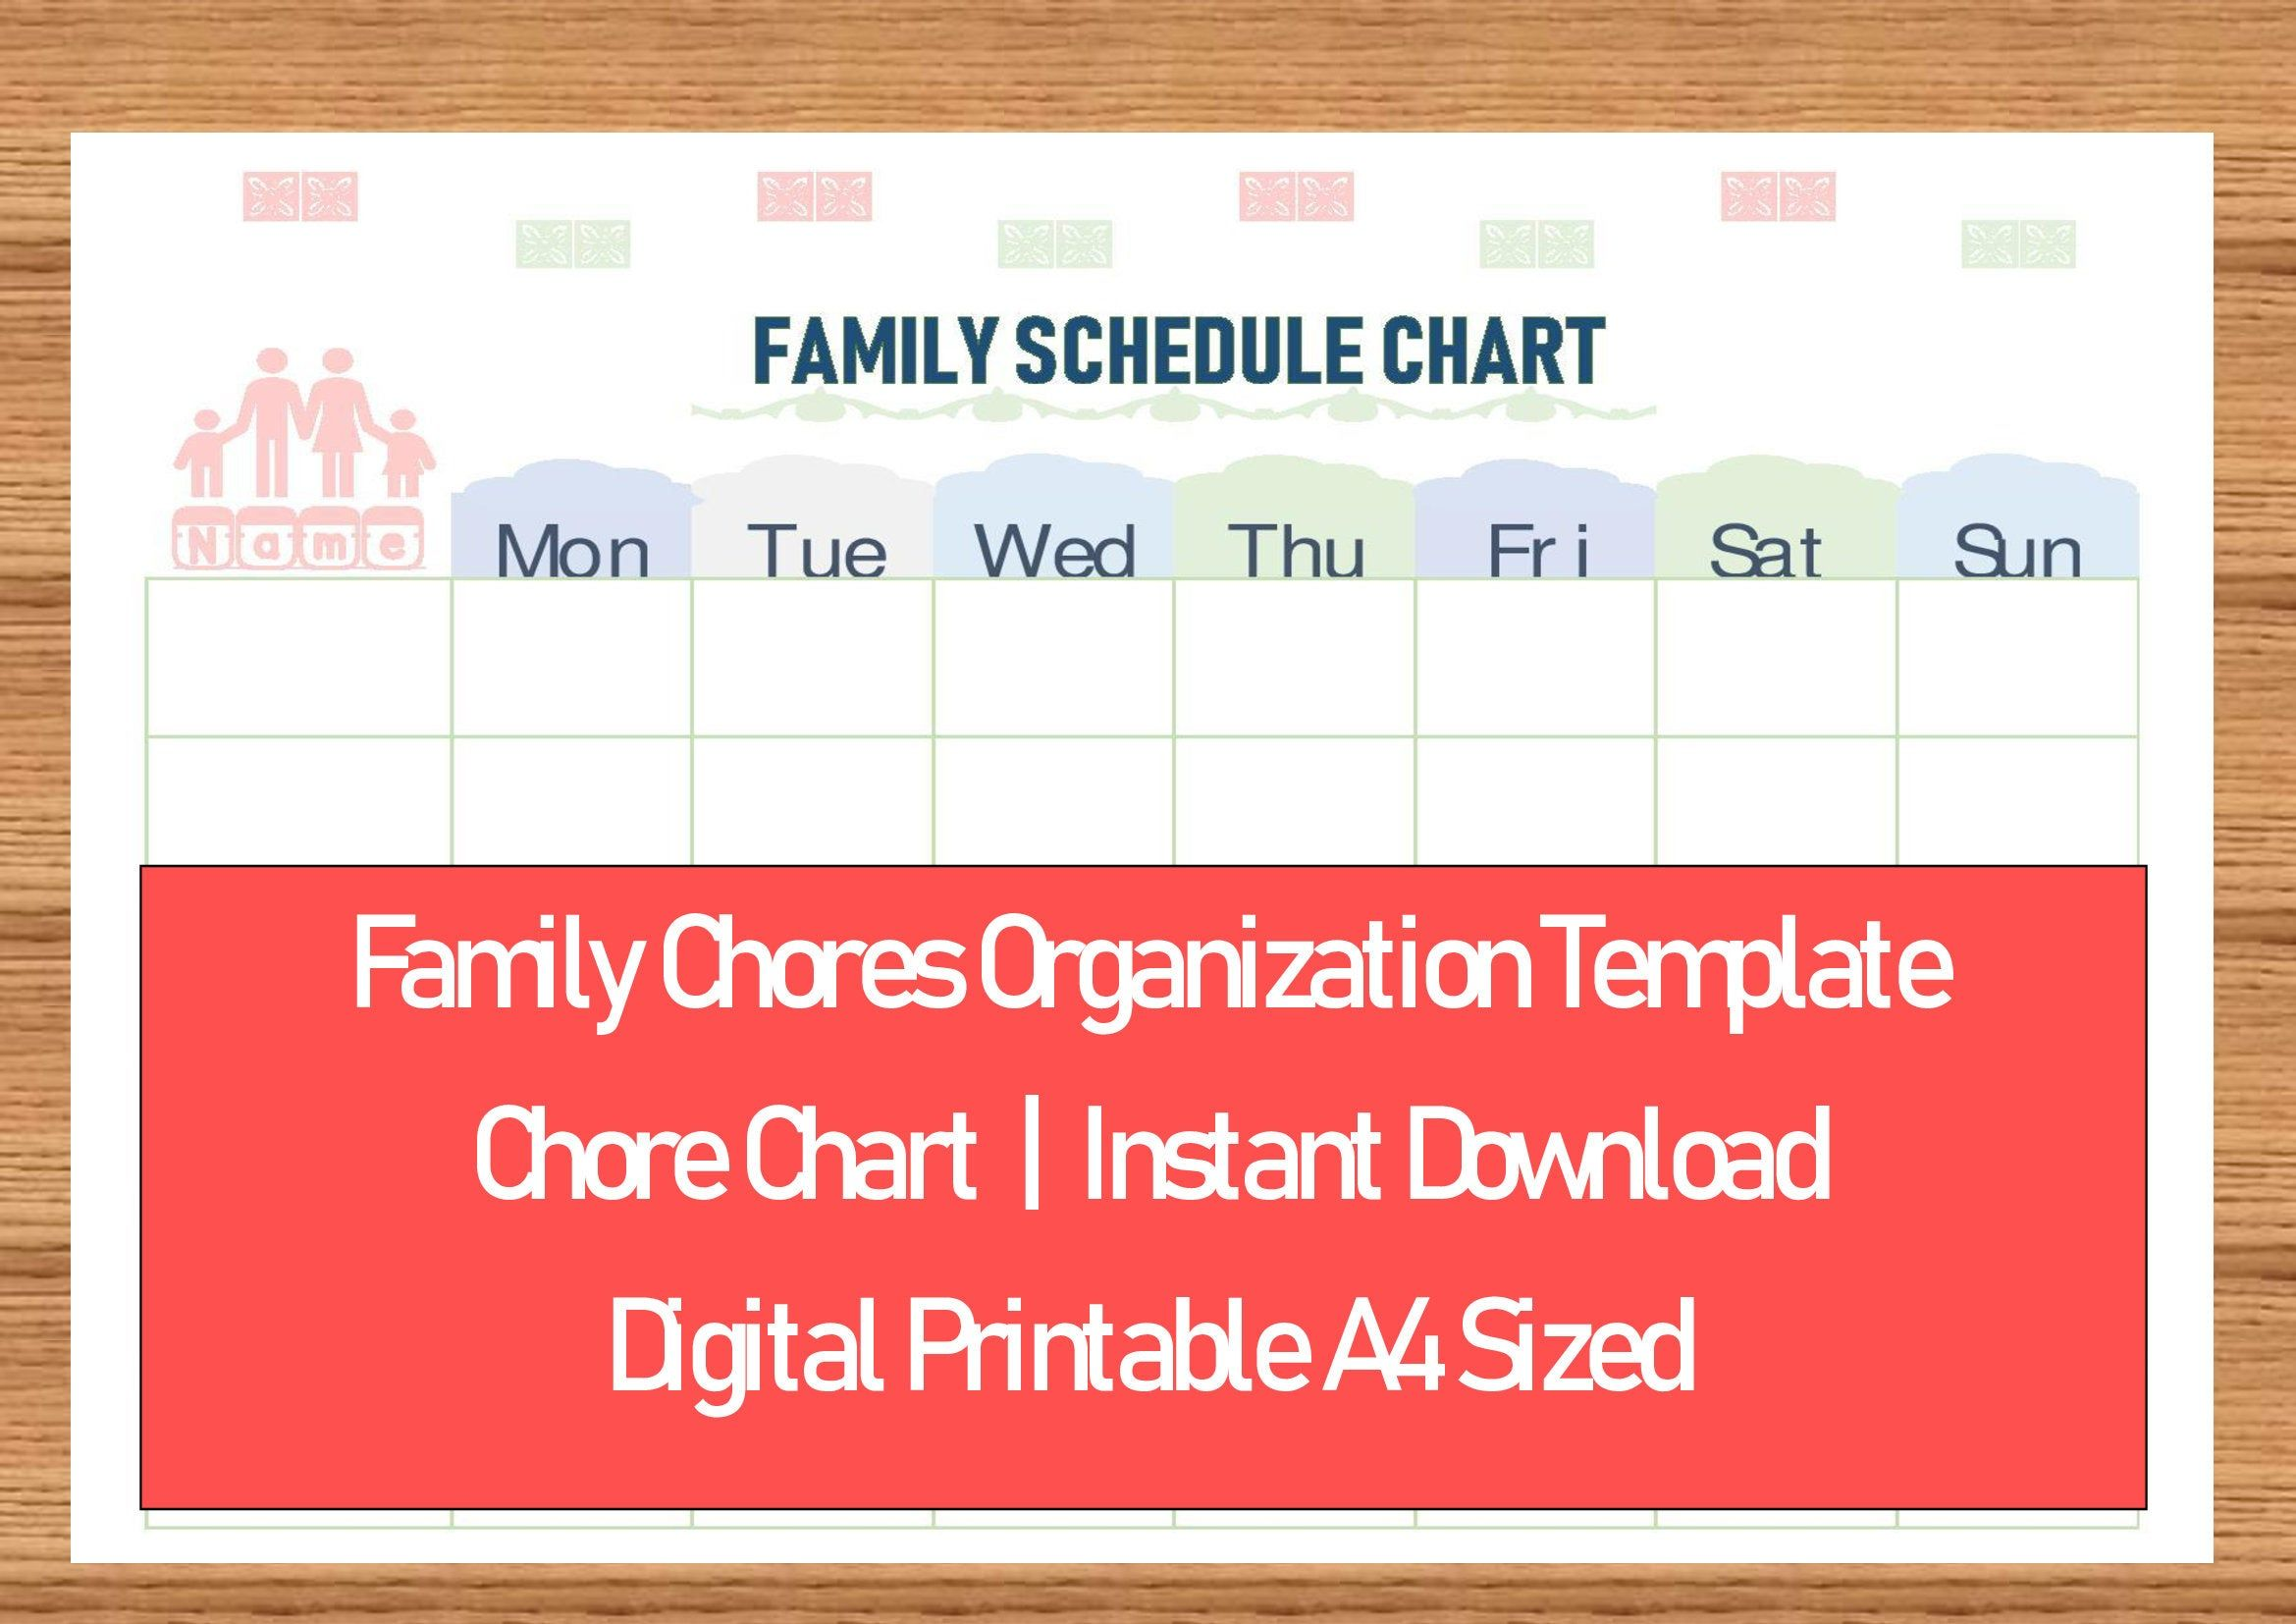 Family Schedule Chart Family Chore Chart Planner Template